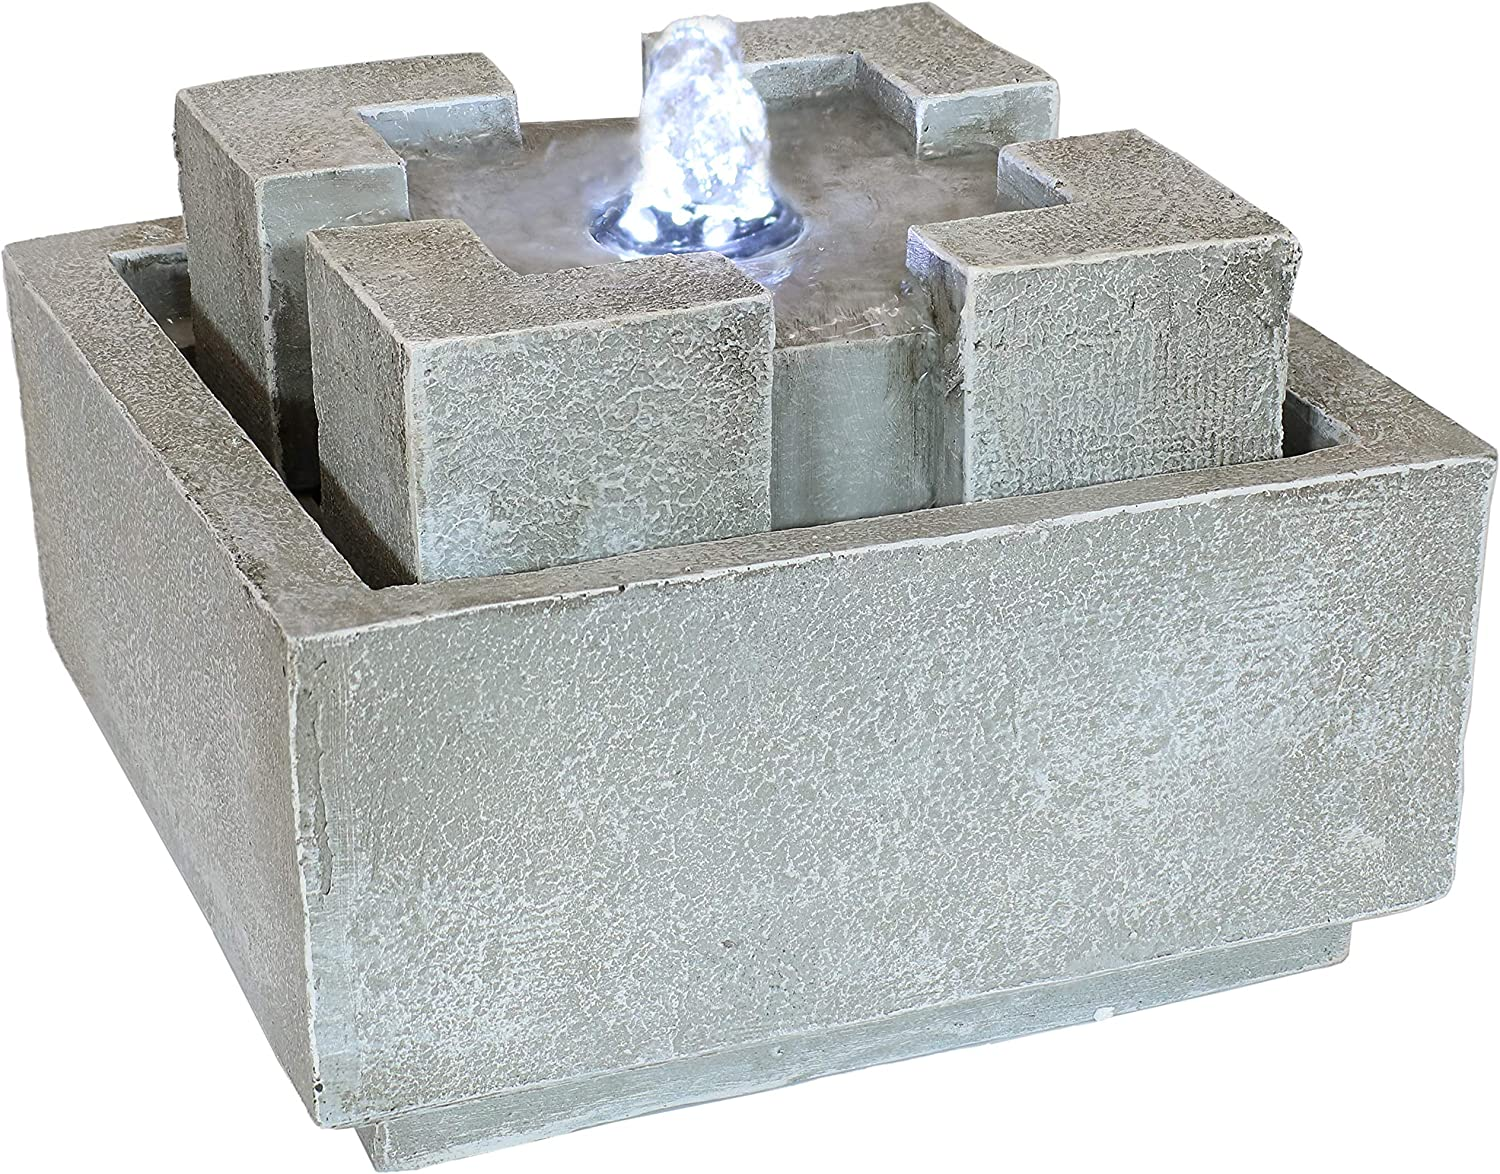 Sunnydaze 7-Inch Square Dynasty Bubbling Indoor Tabletop Water Fountain - Interior Water Feature - Decor for Kitchen, Dining Room, Bedroom and Living Room